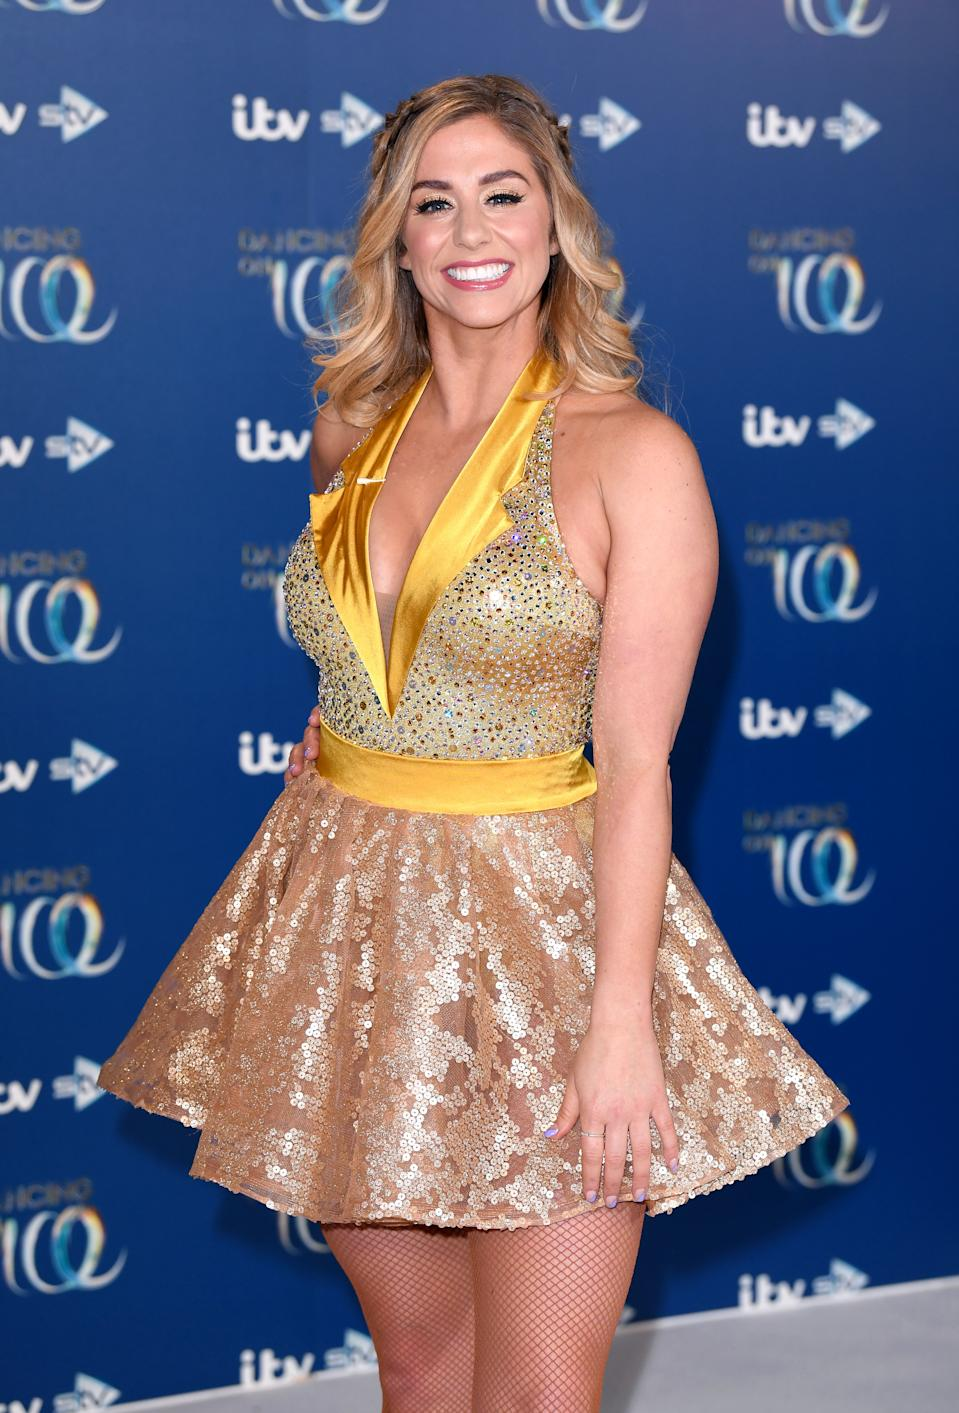 Alex Murphy attends the Dancing On Ice 2019 photocall at the Dancing On Ice Studio, ITV Studios, Old Bovingdon Airfield on December 09, 2019 in Bovingdon, England. (Photo by Karwai Tang/WireImage)